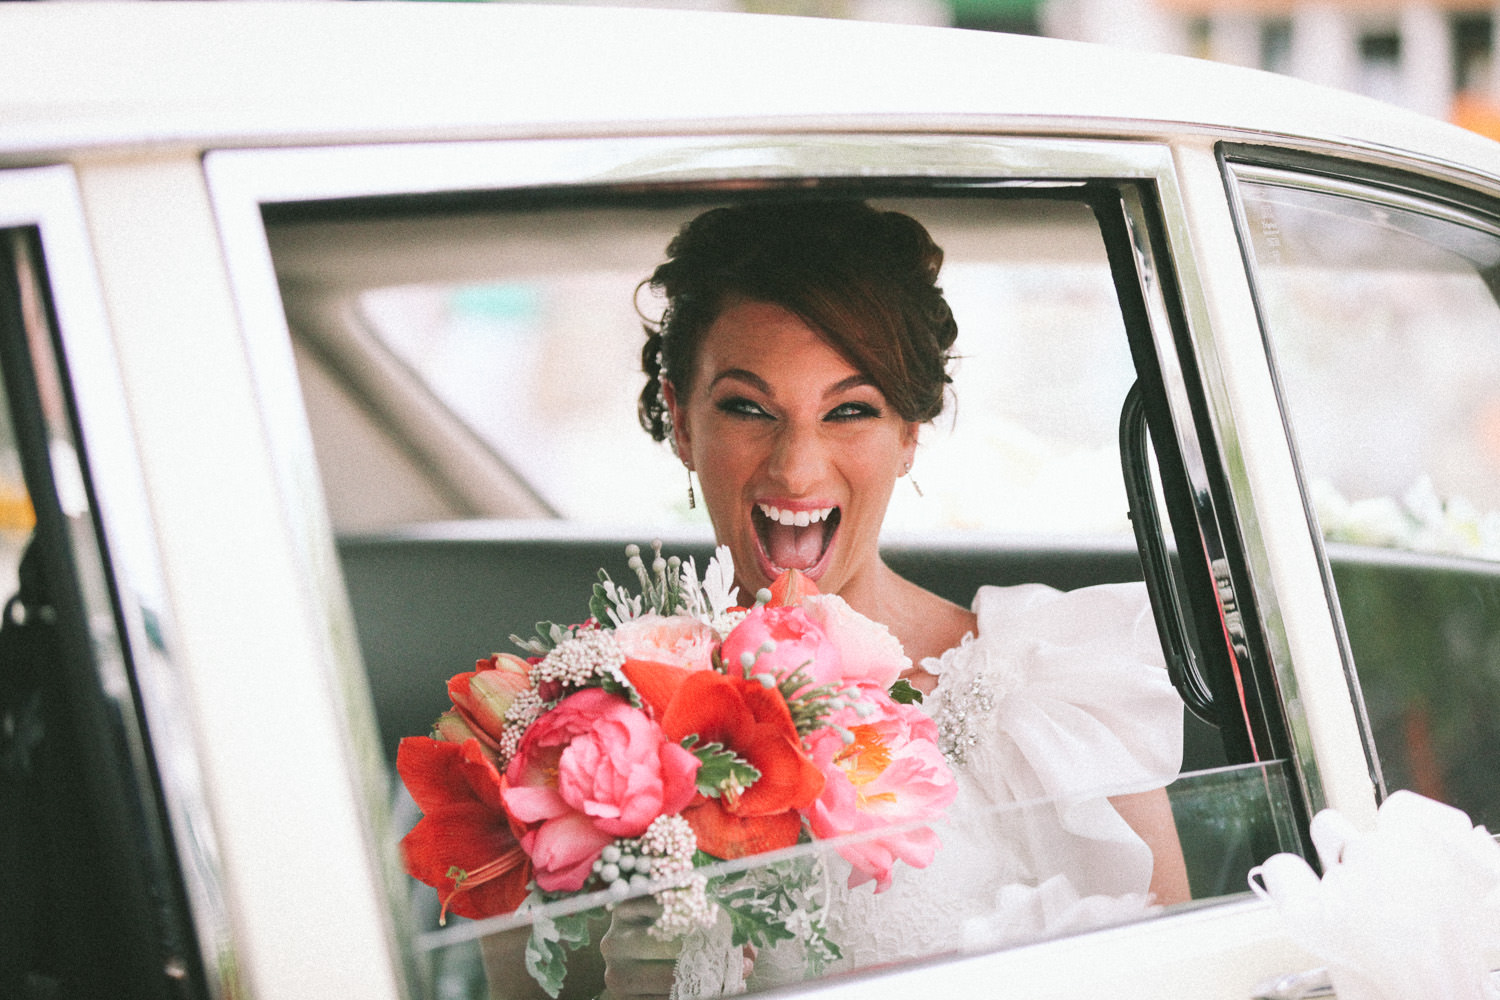 Cost of wedding photography, excited bride